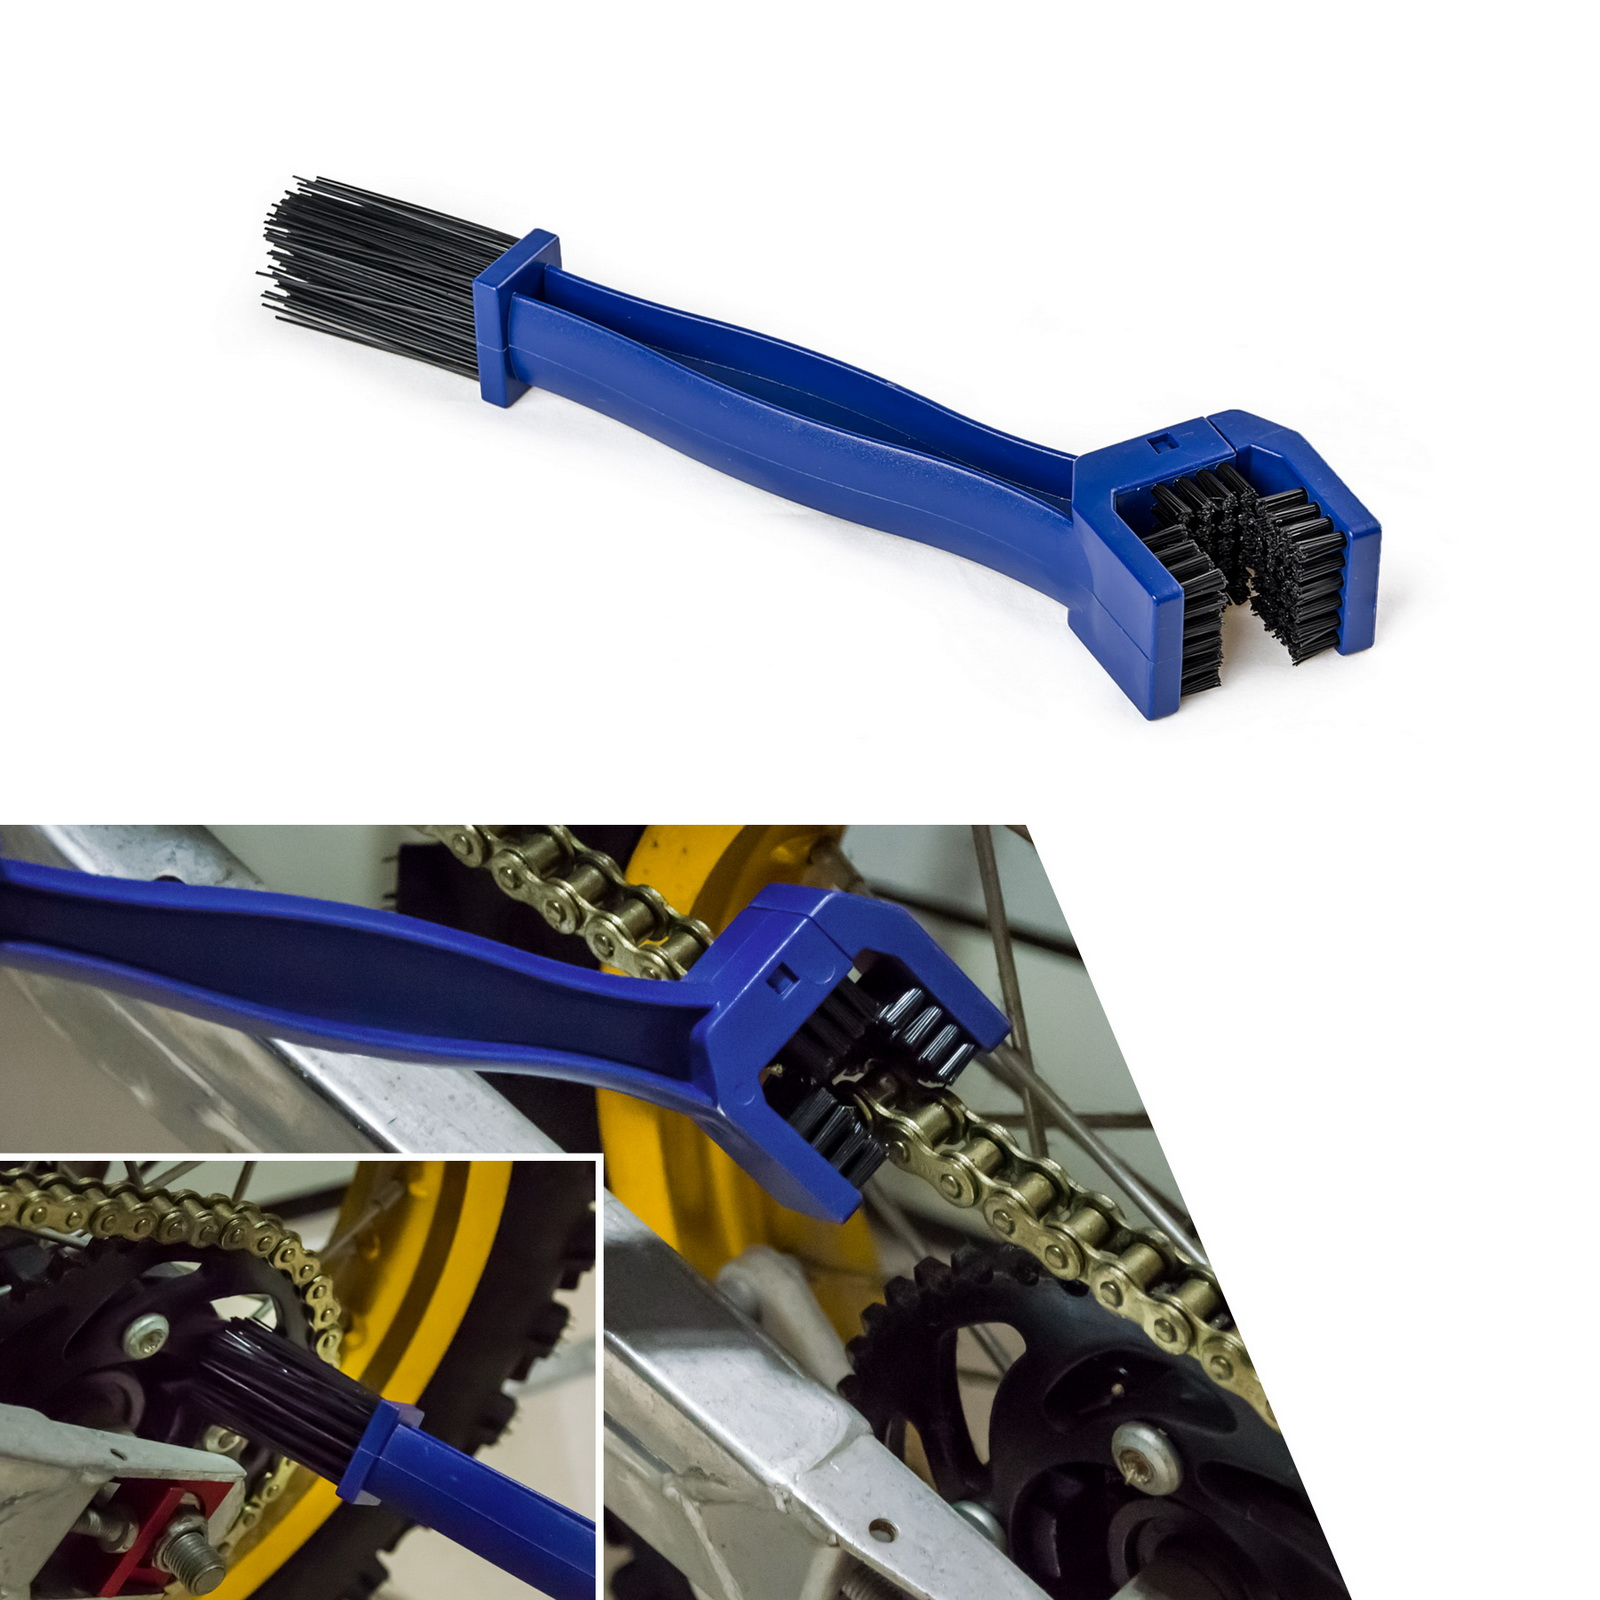 H2CNC Bicycle Motorcycle Chain Cleaning Brush Gear Grunge Clear Outdoor Scrubber Wheel Cleaner Dust Removal Tool Durable Plastic